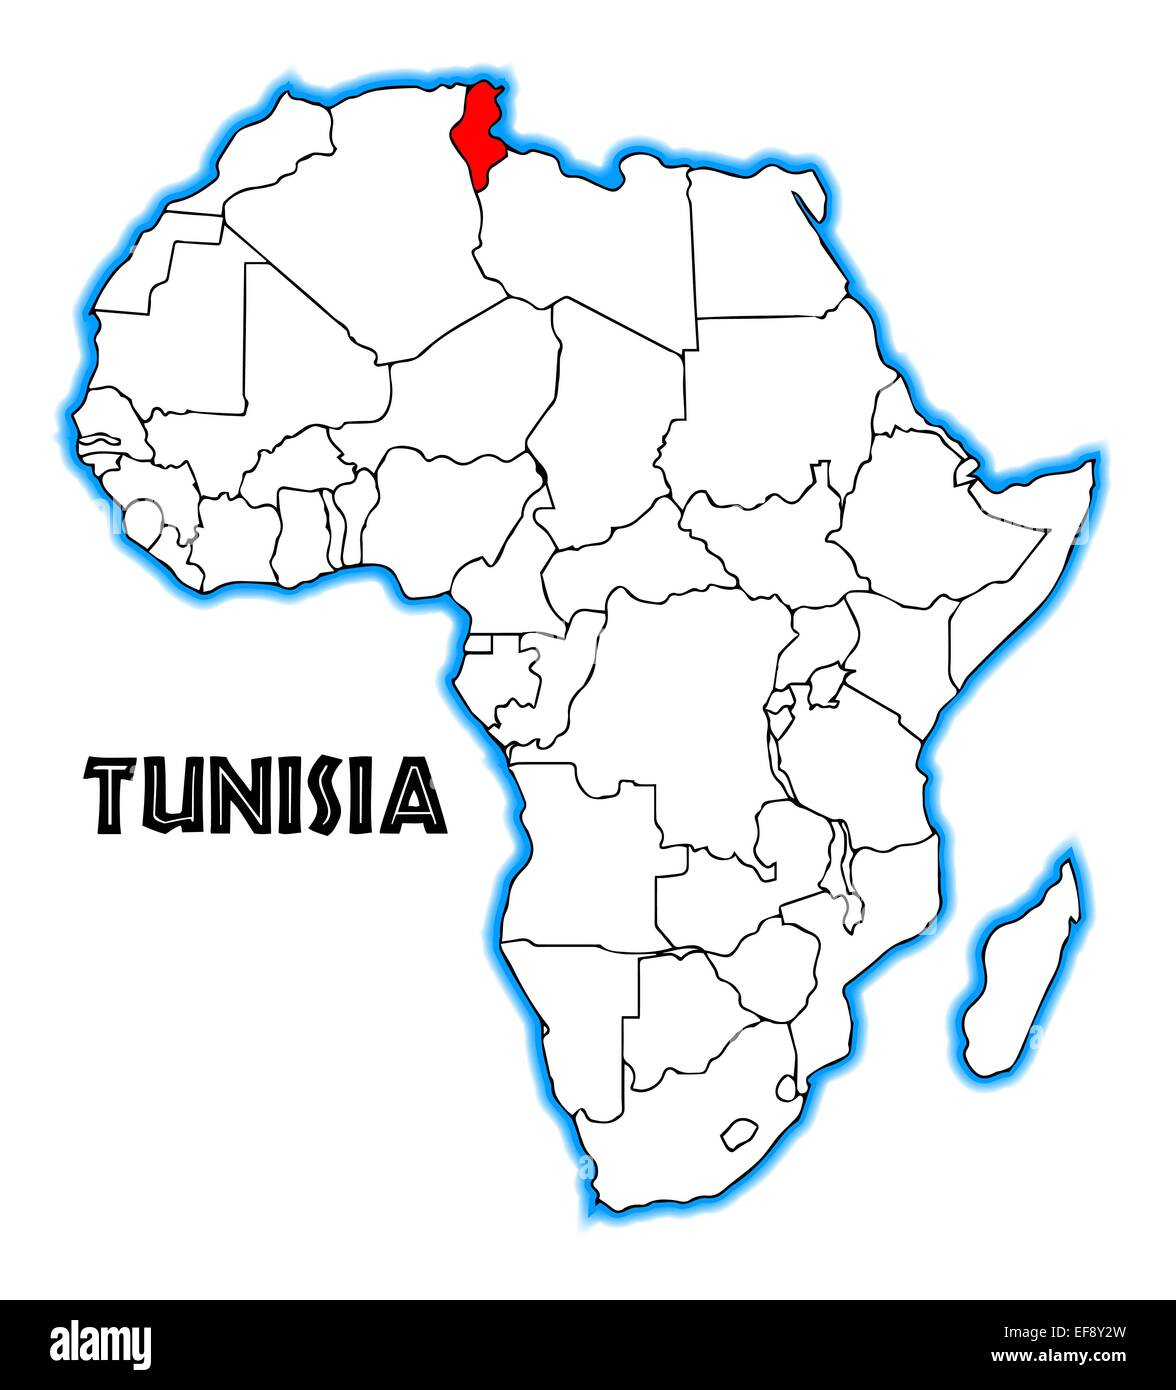 Picture of: Tunisia Outline Inset Into A Map Of Africa Over A White Background Stock Photo Alamy